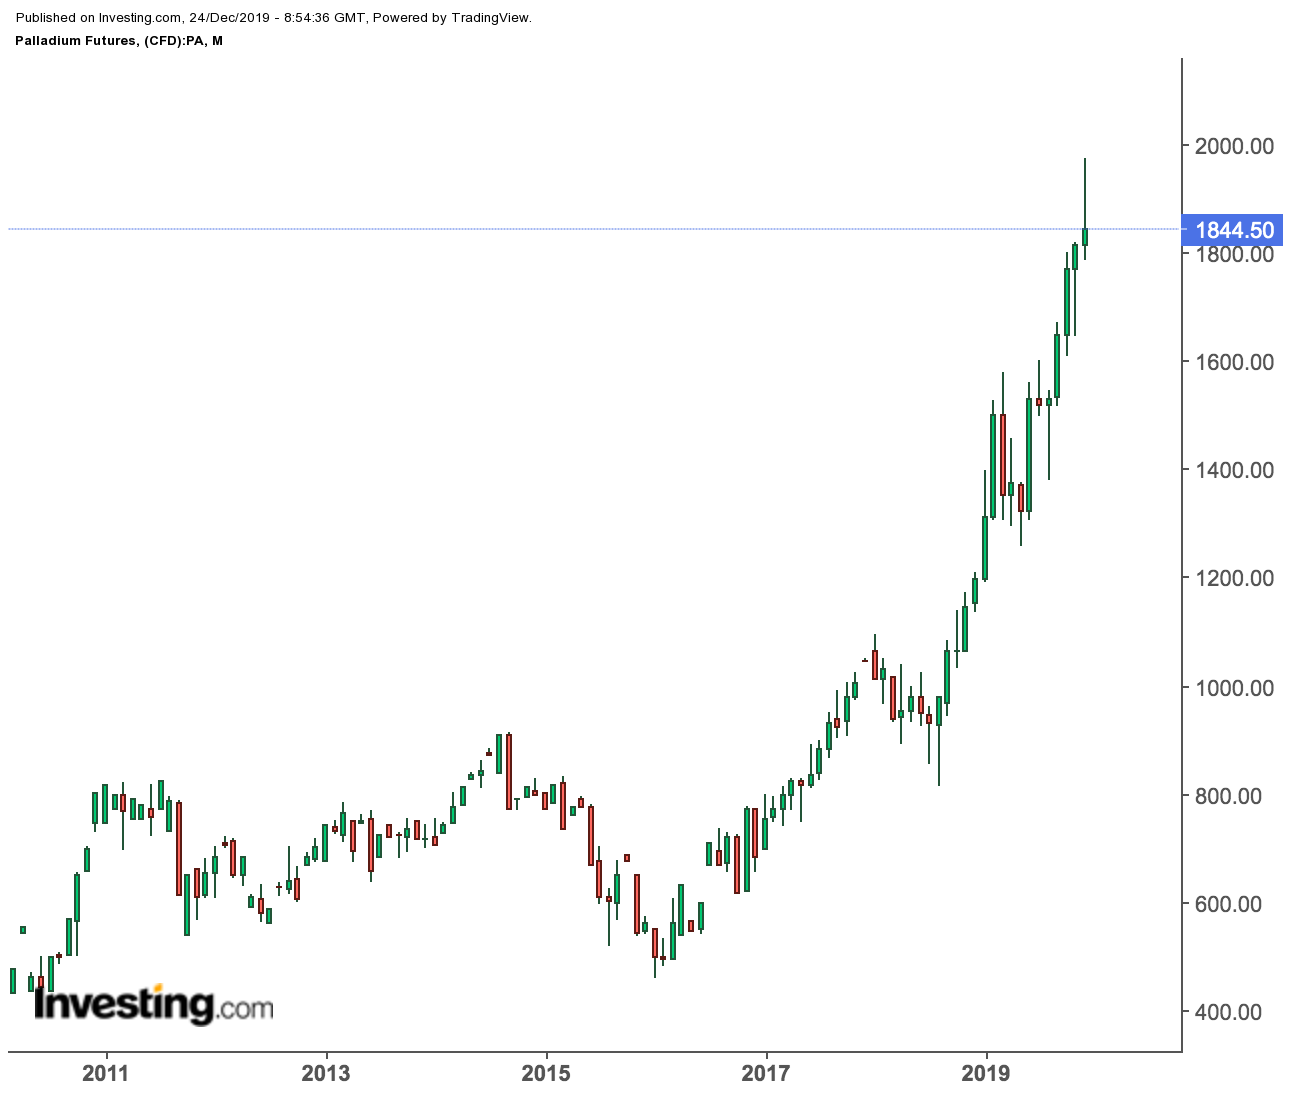 Palladium Futures Monthly Chart